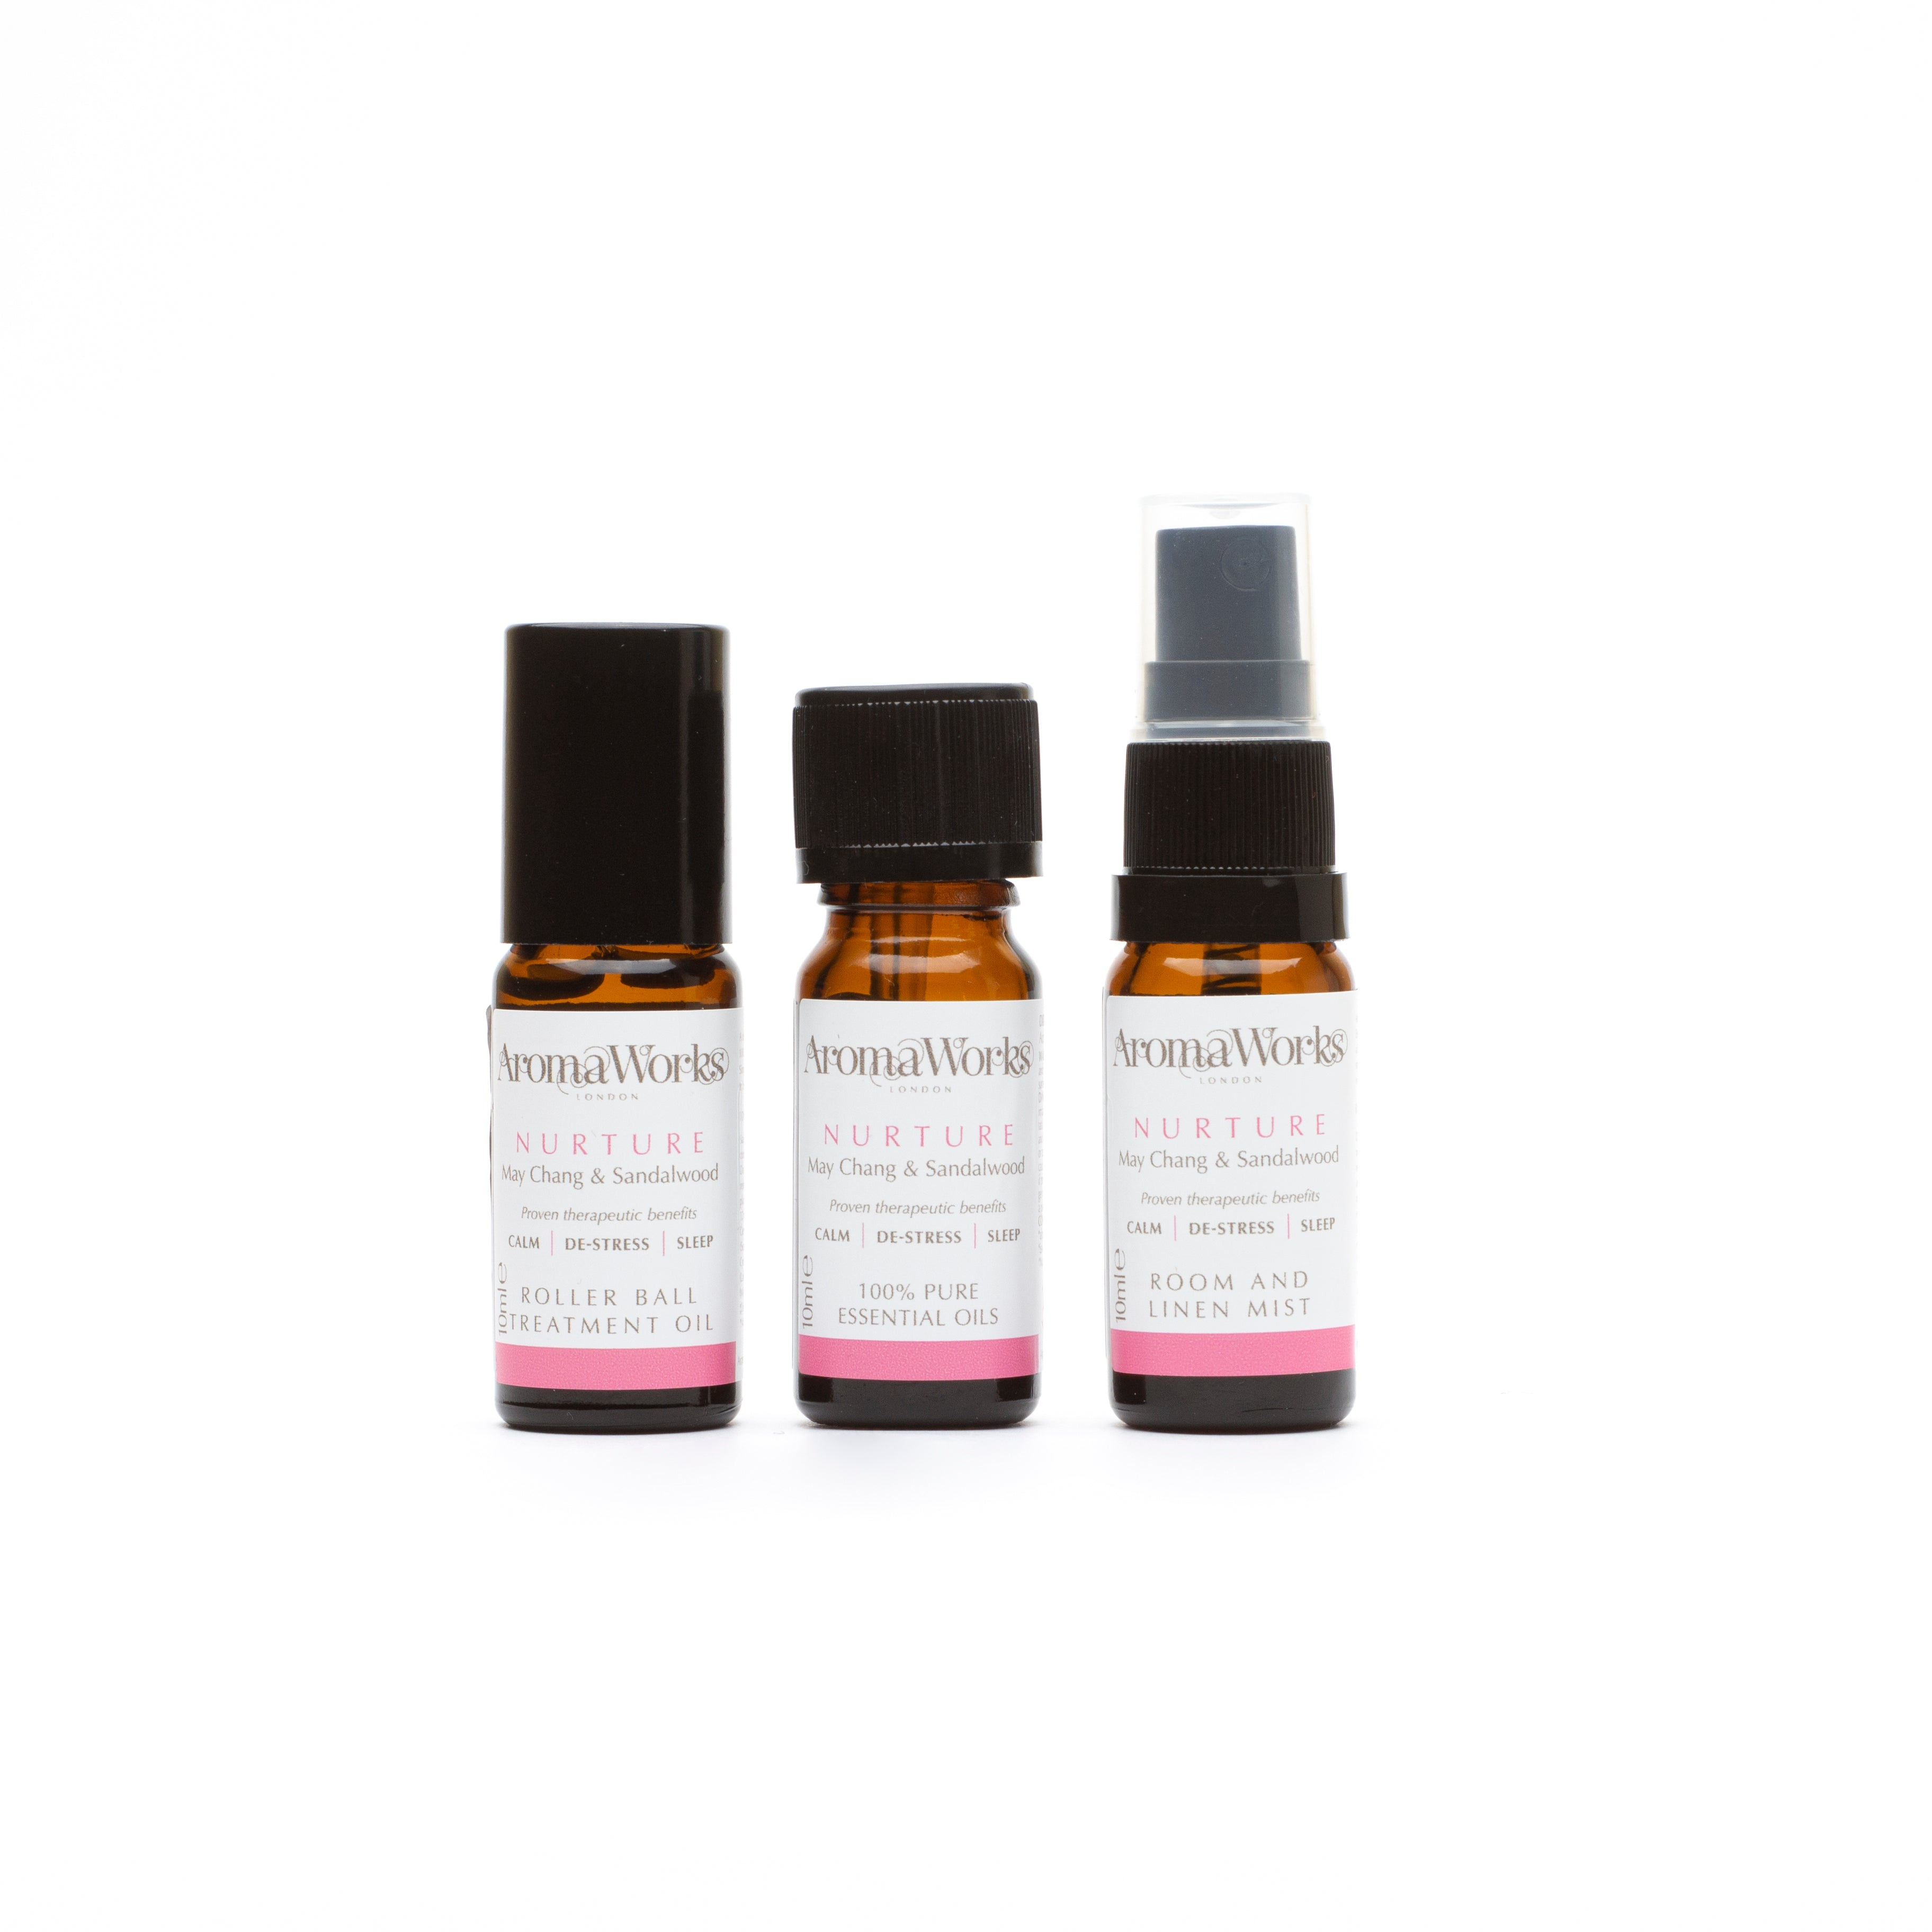 Nurture Wellbeing Trio 3 x 10ml products